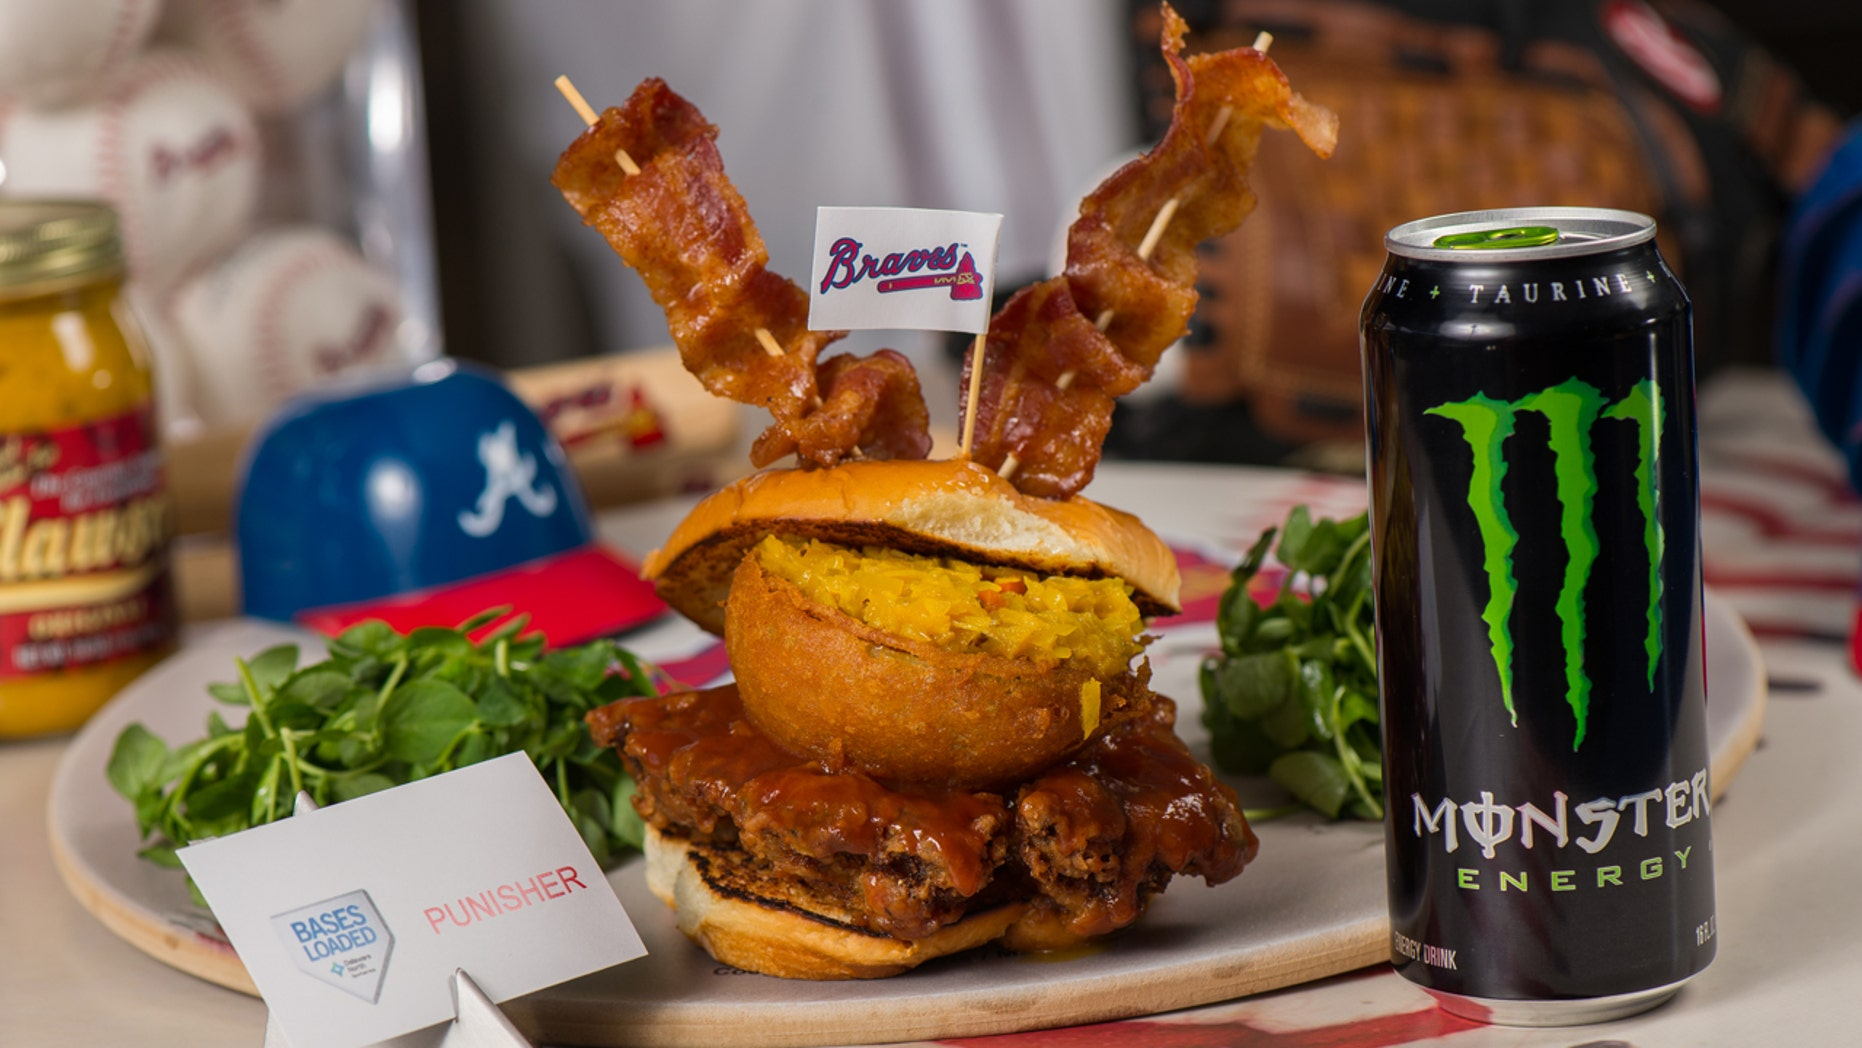 """The Atlanta Braves want to """"punish"""" you with this giant sandwich glazed with Monster energy-drink infused barbecue sauce."""